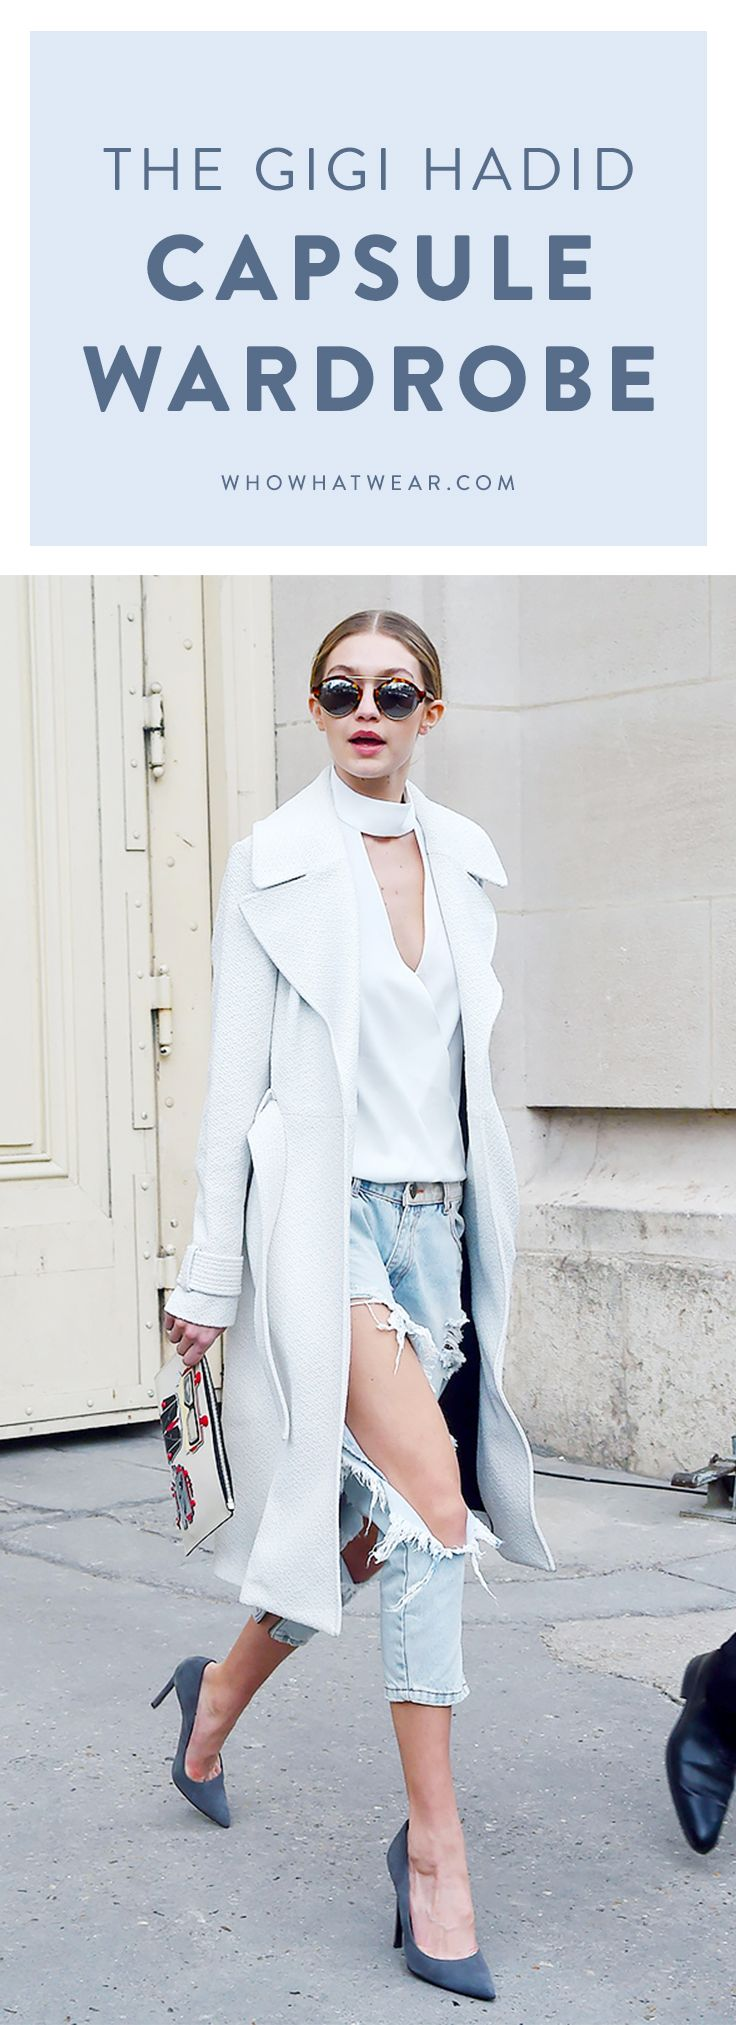 How to get Gigi Hadid's style with just 10 pieces